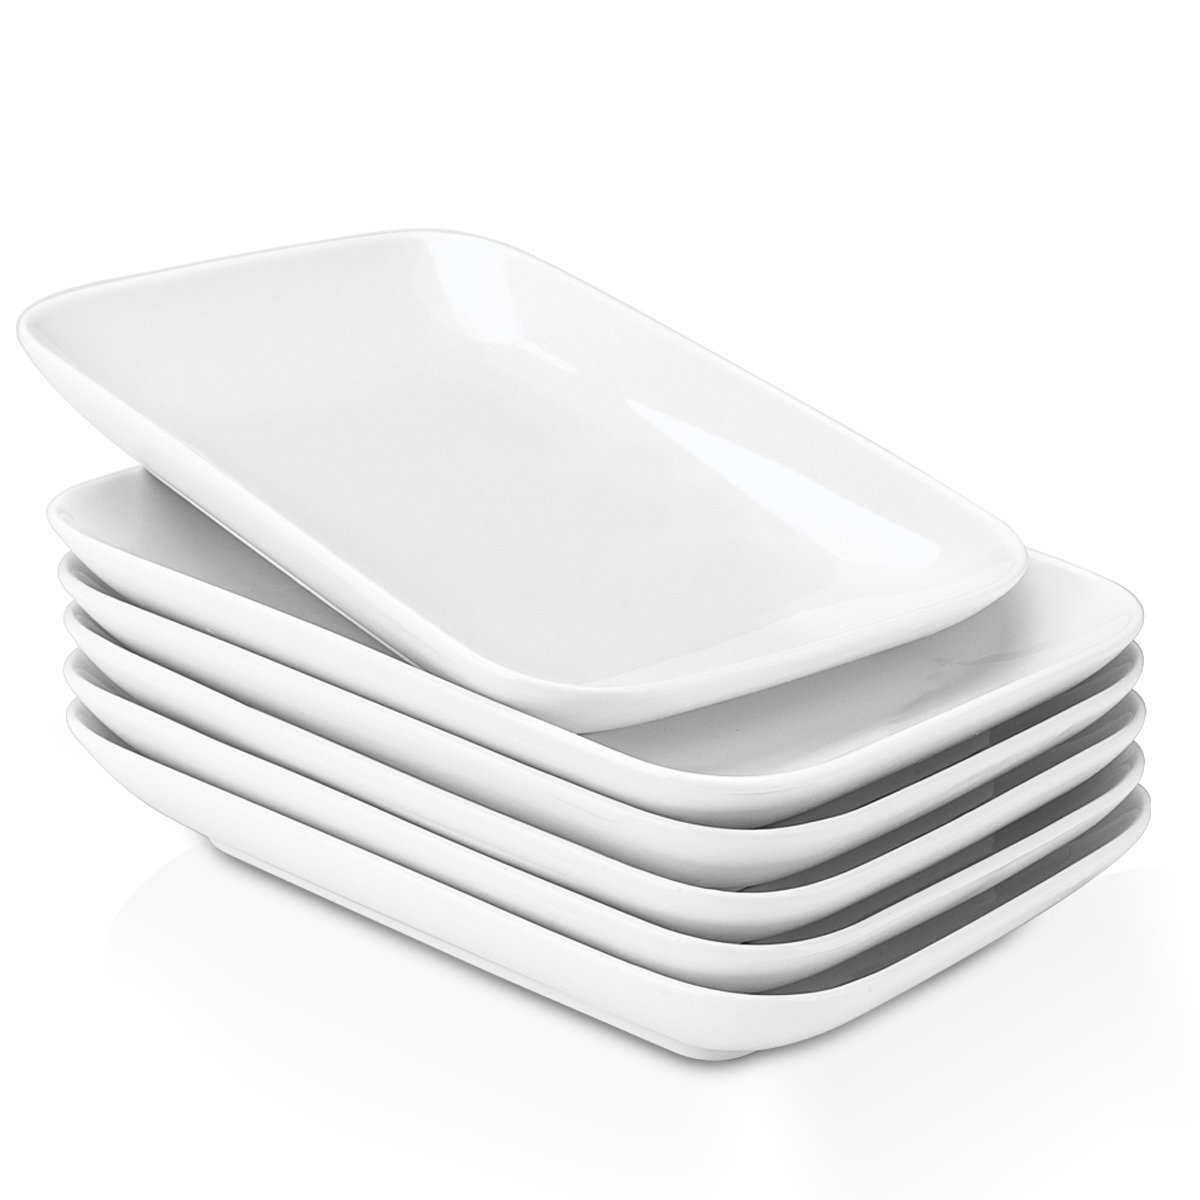 Delling 8 in Ultralight Ceramic Dessert/Appetizer Plates, Rectangular Salad Plates for Fruit, Cheese, Dessert, Lunch and More - Set of 6, White by DELLING